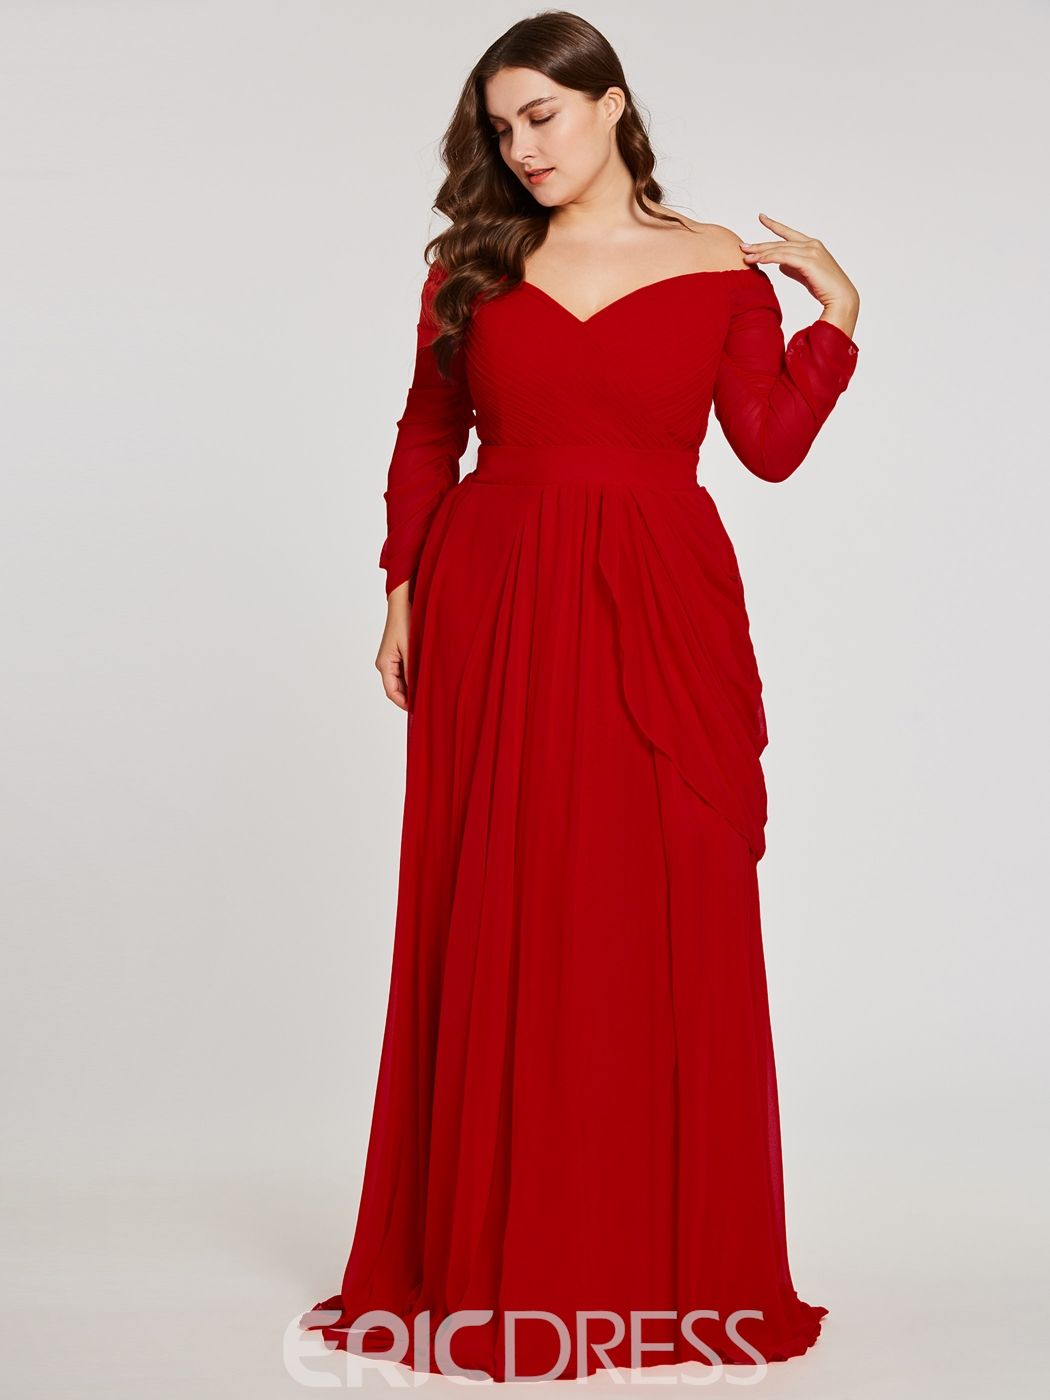 f6e6794ccb4 Ericdress Plus Size Off-the-Shoulder Long Sleeves Evening Dress (Can you  believe the price  )